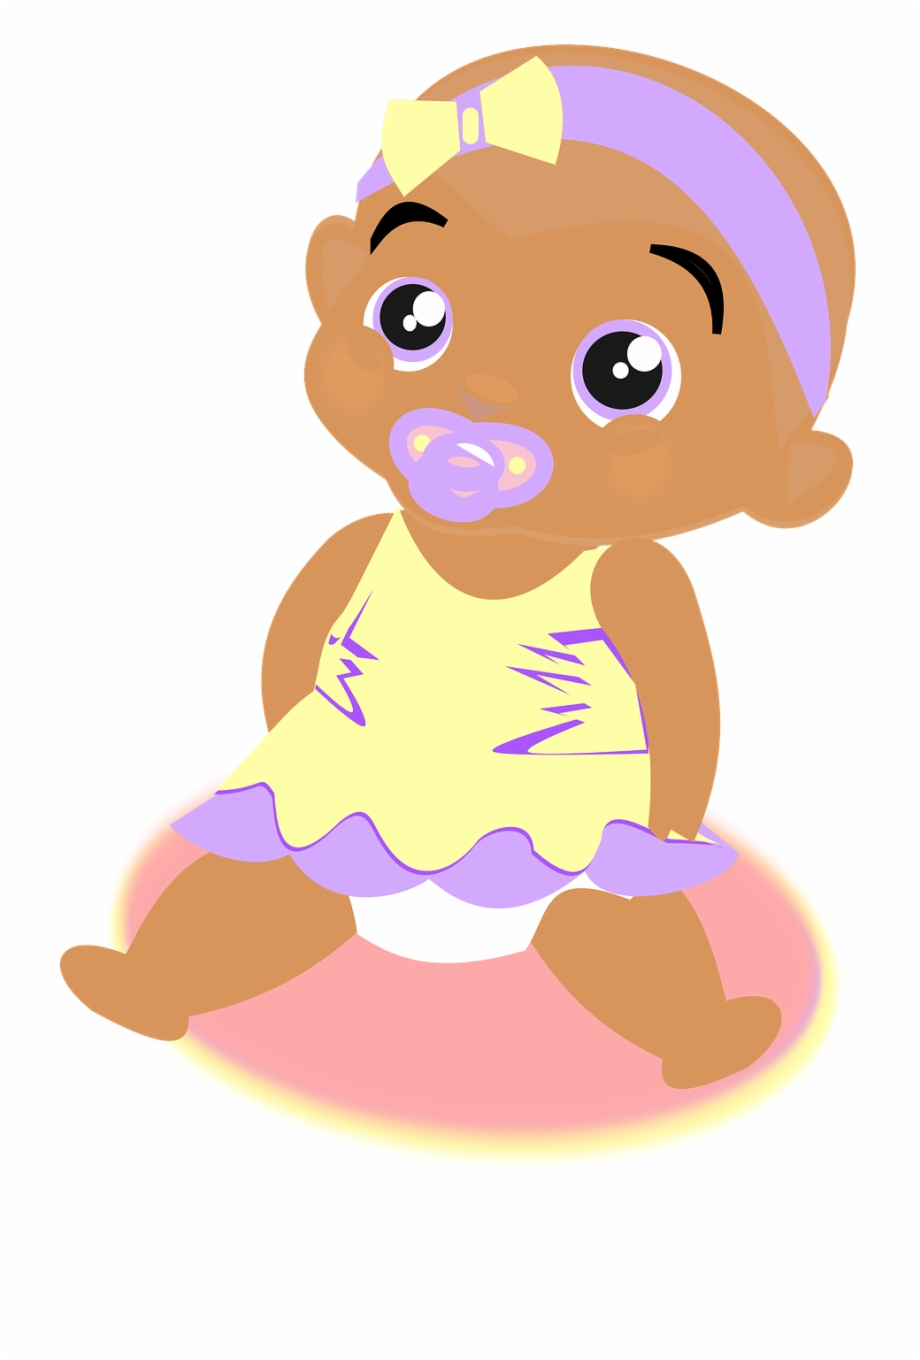 Baby Girl Dress Ribbon Soother Png Image.